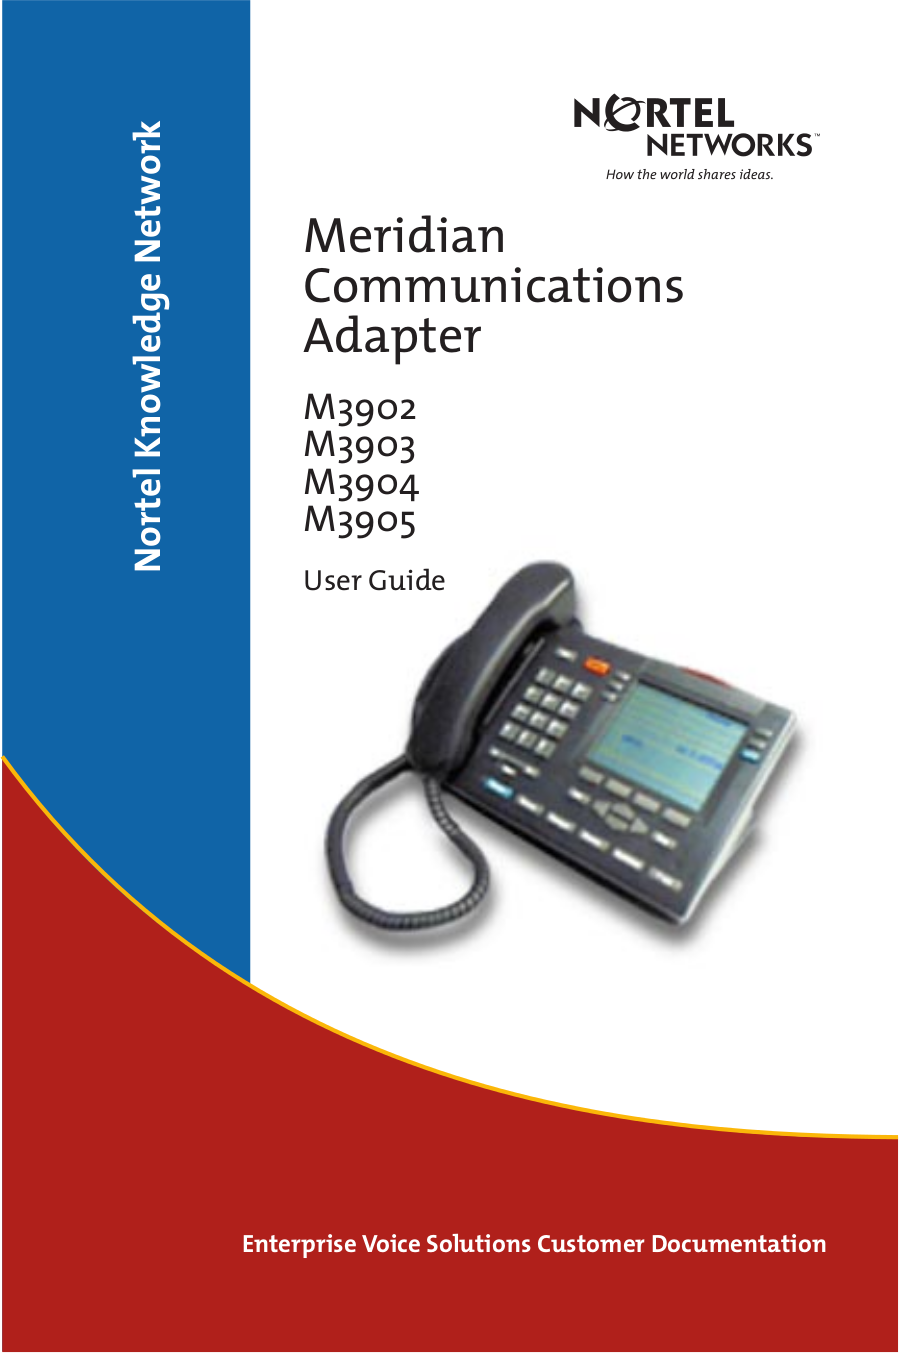 nortel networks phone manual m3902